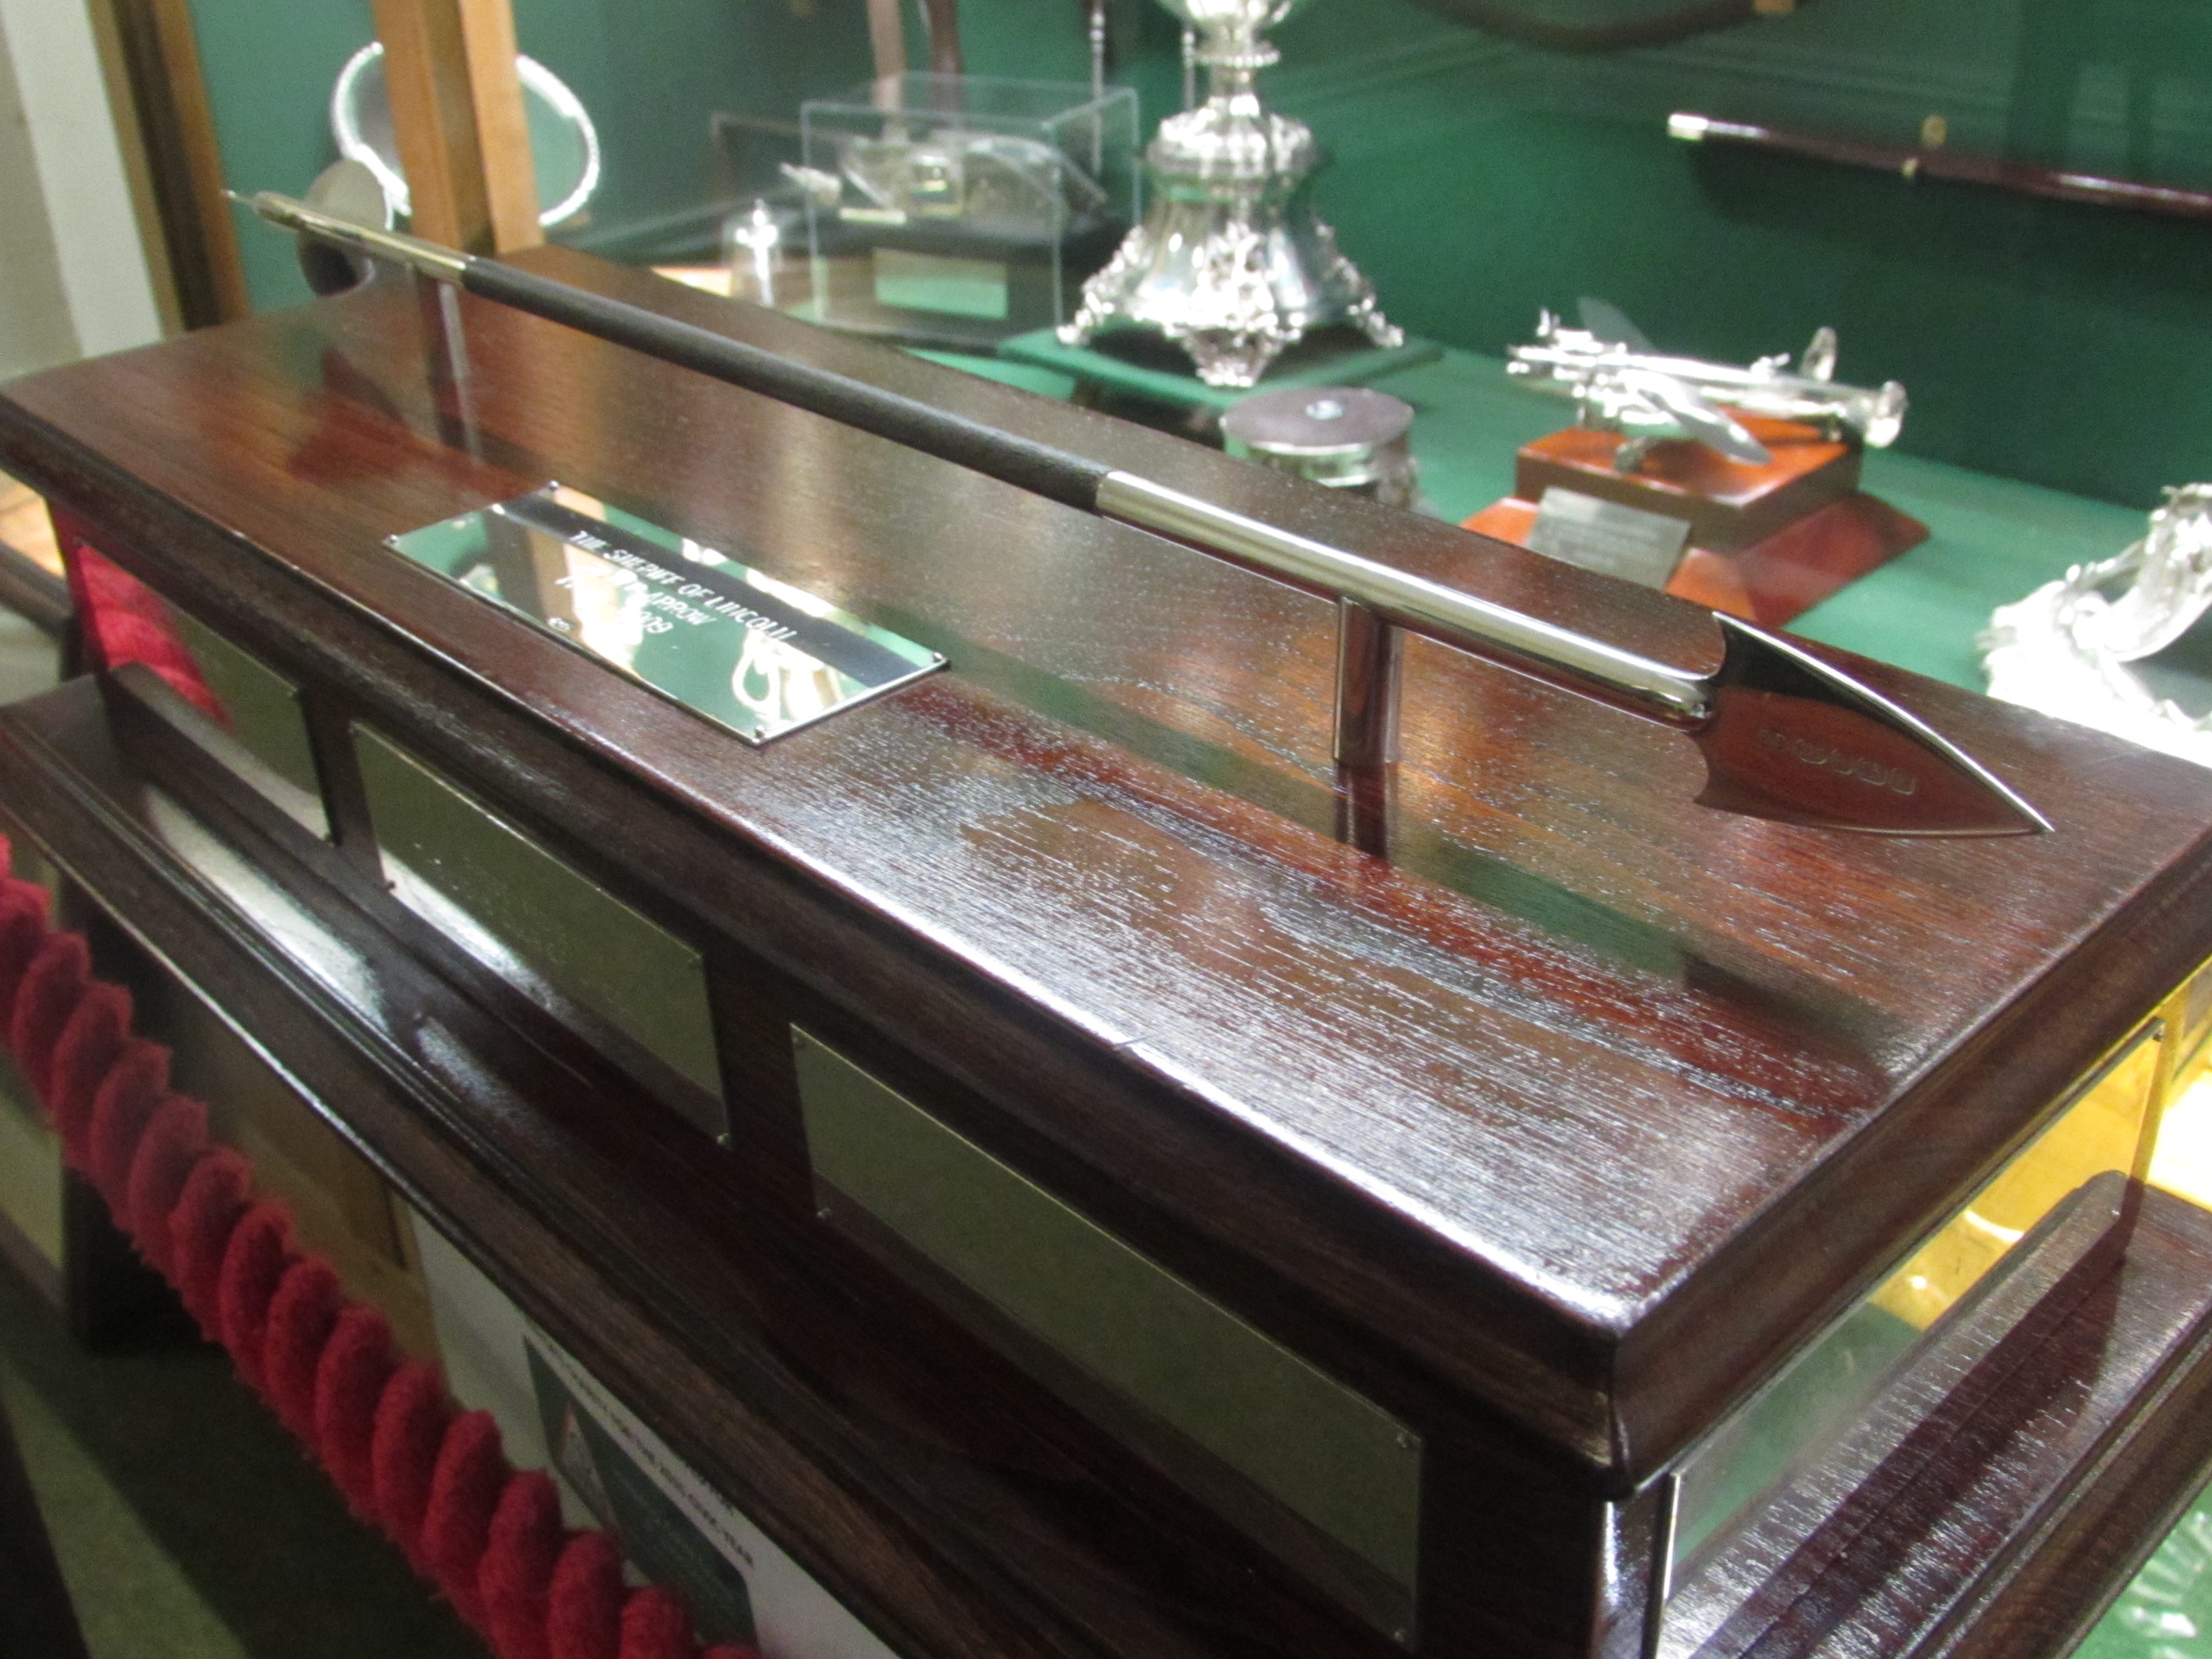 Picture of a silver arrow in a display cabinet.